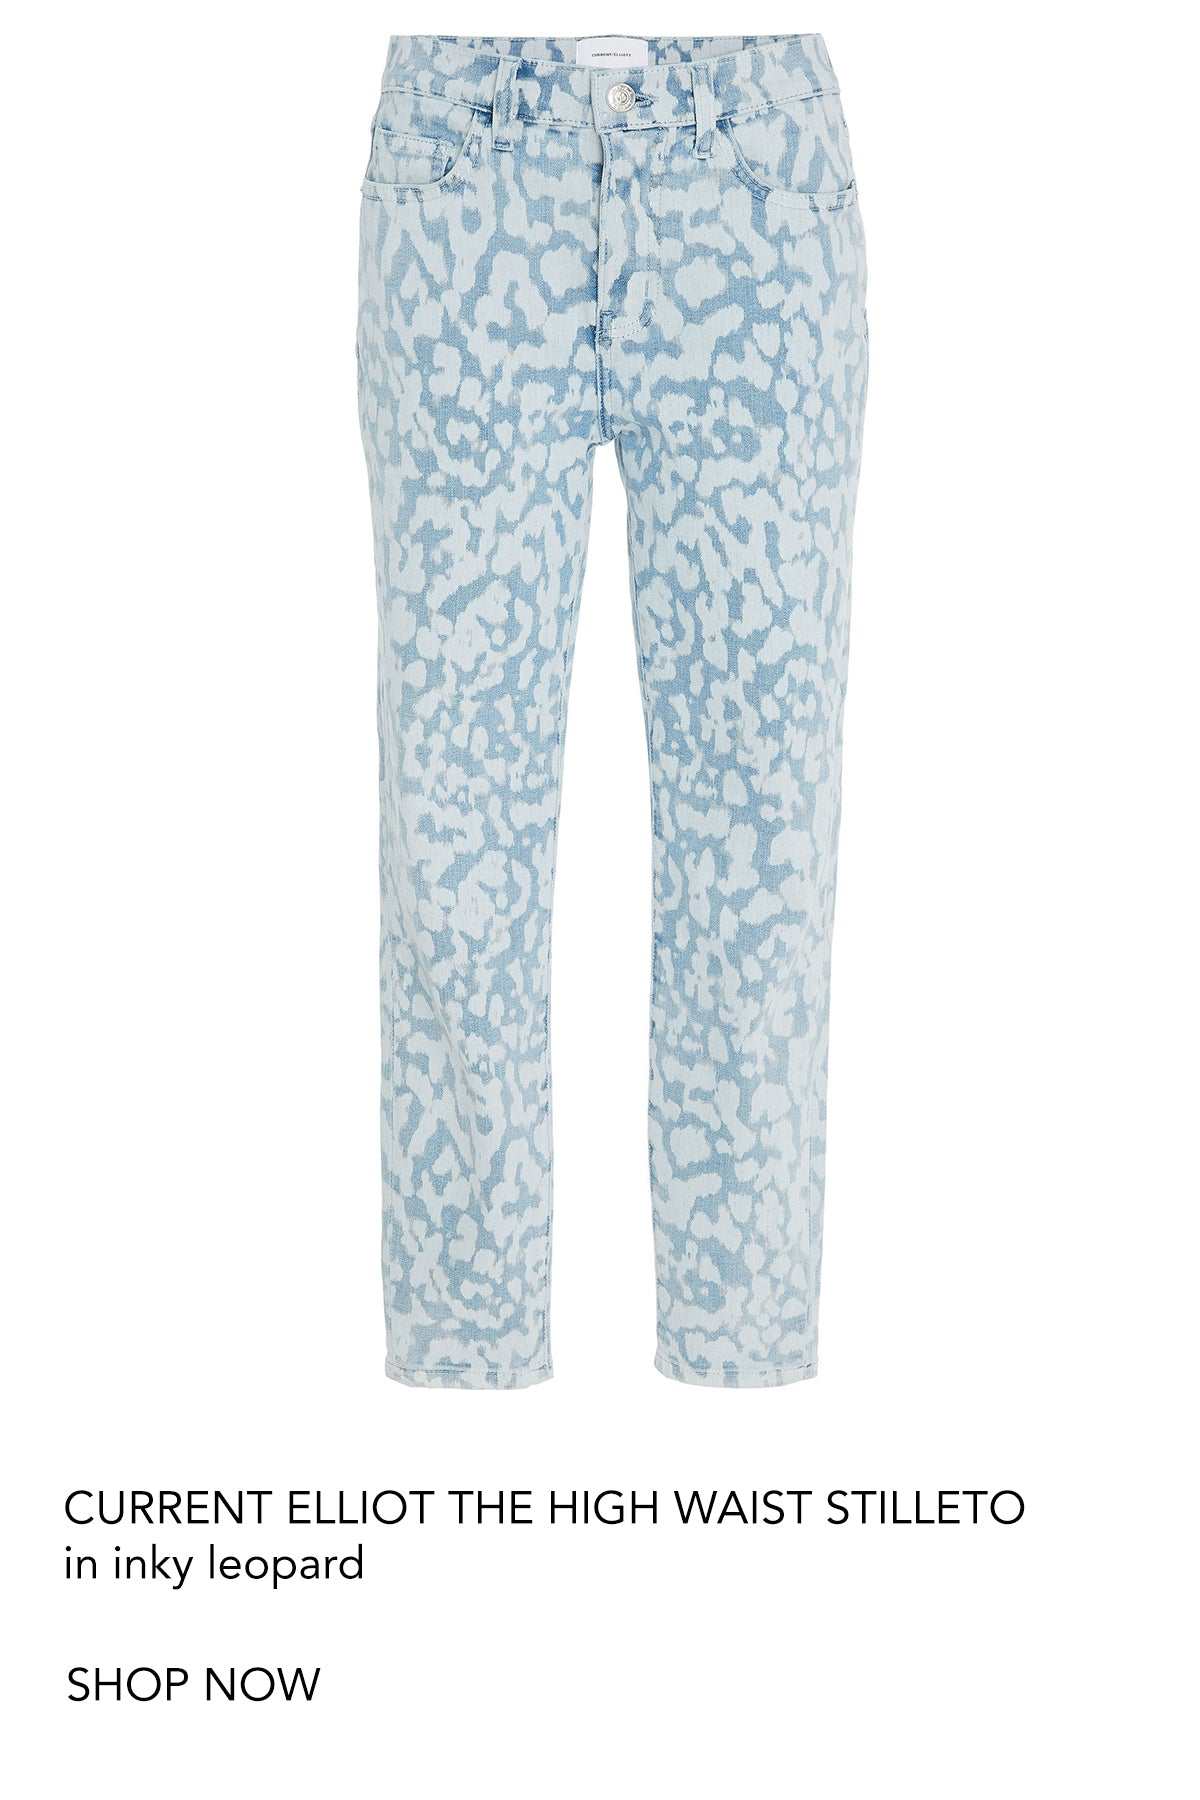 current elliot high waist stilleto inky leopard denim jean perth australia fashion iridescent sea beach house